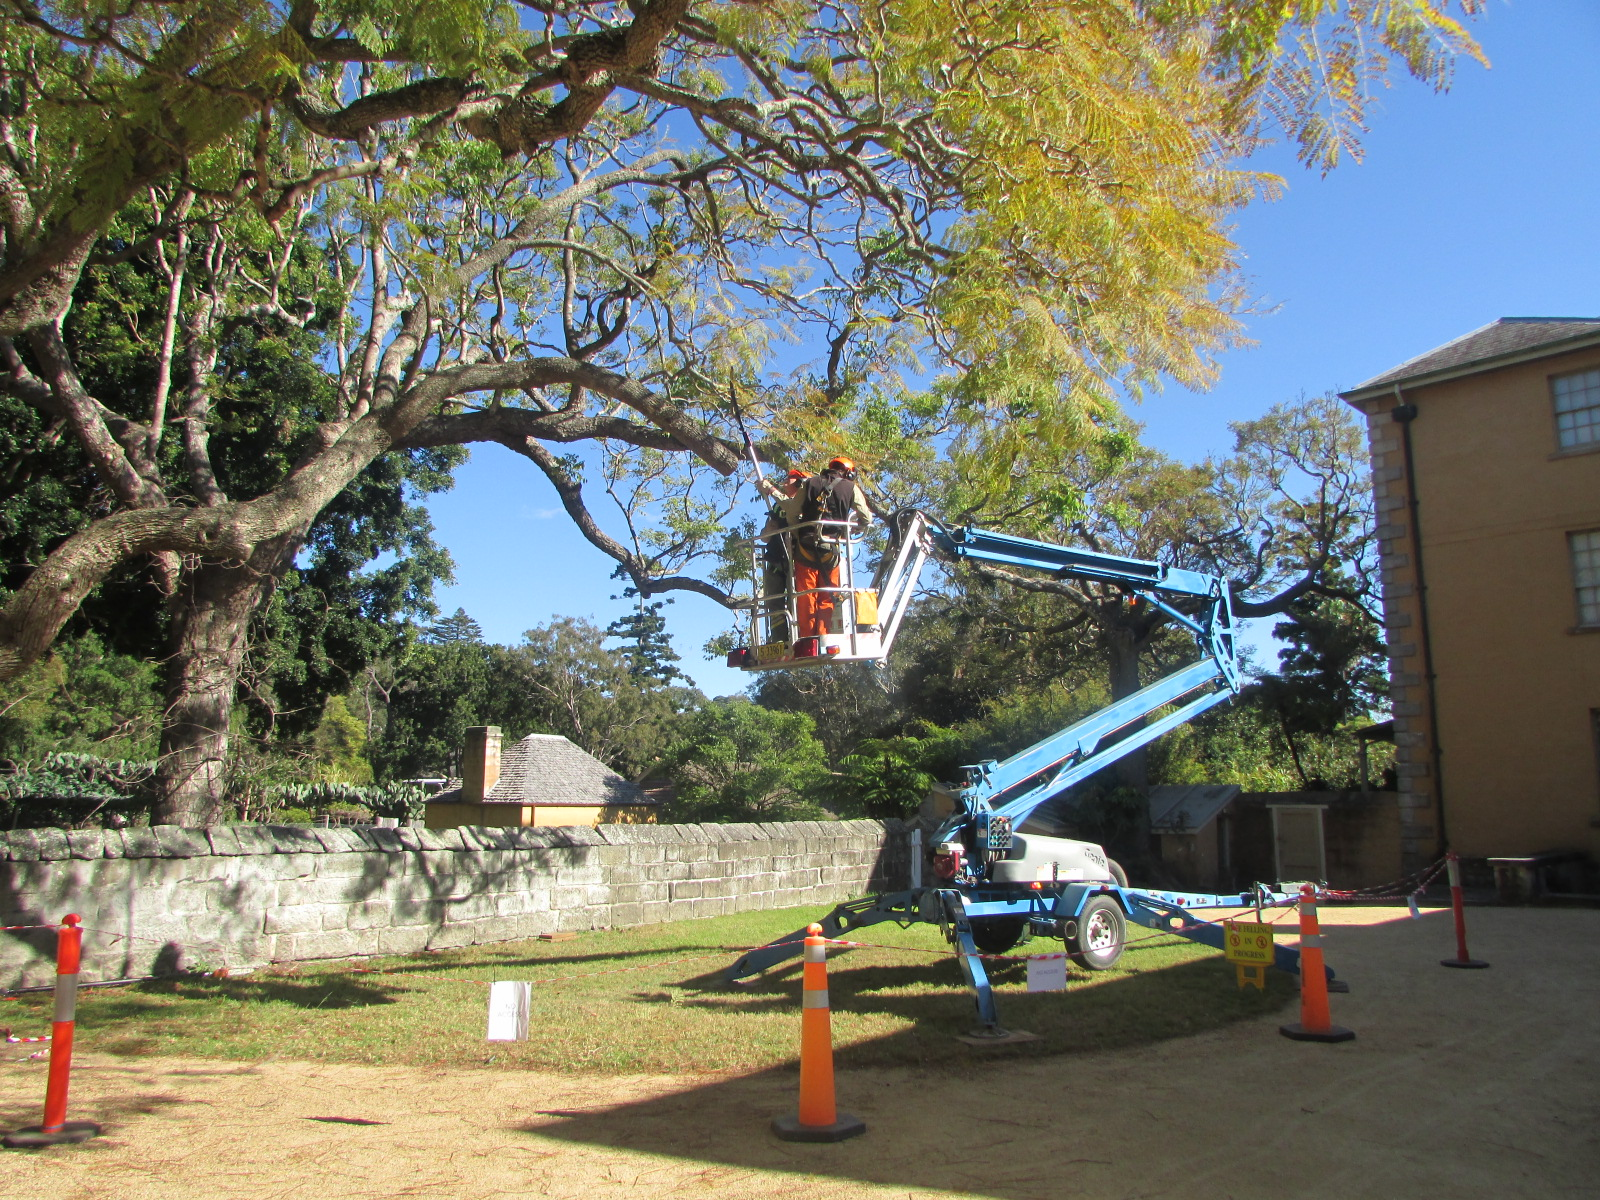 Men in crane accessing tree branch.